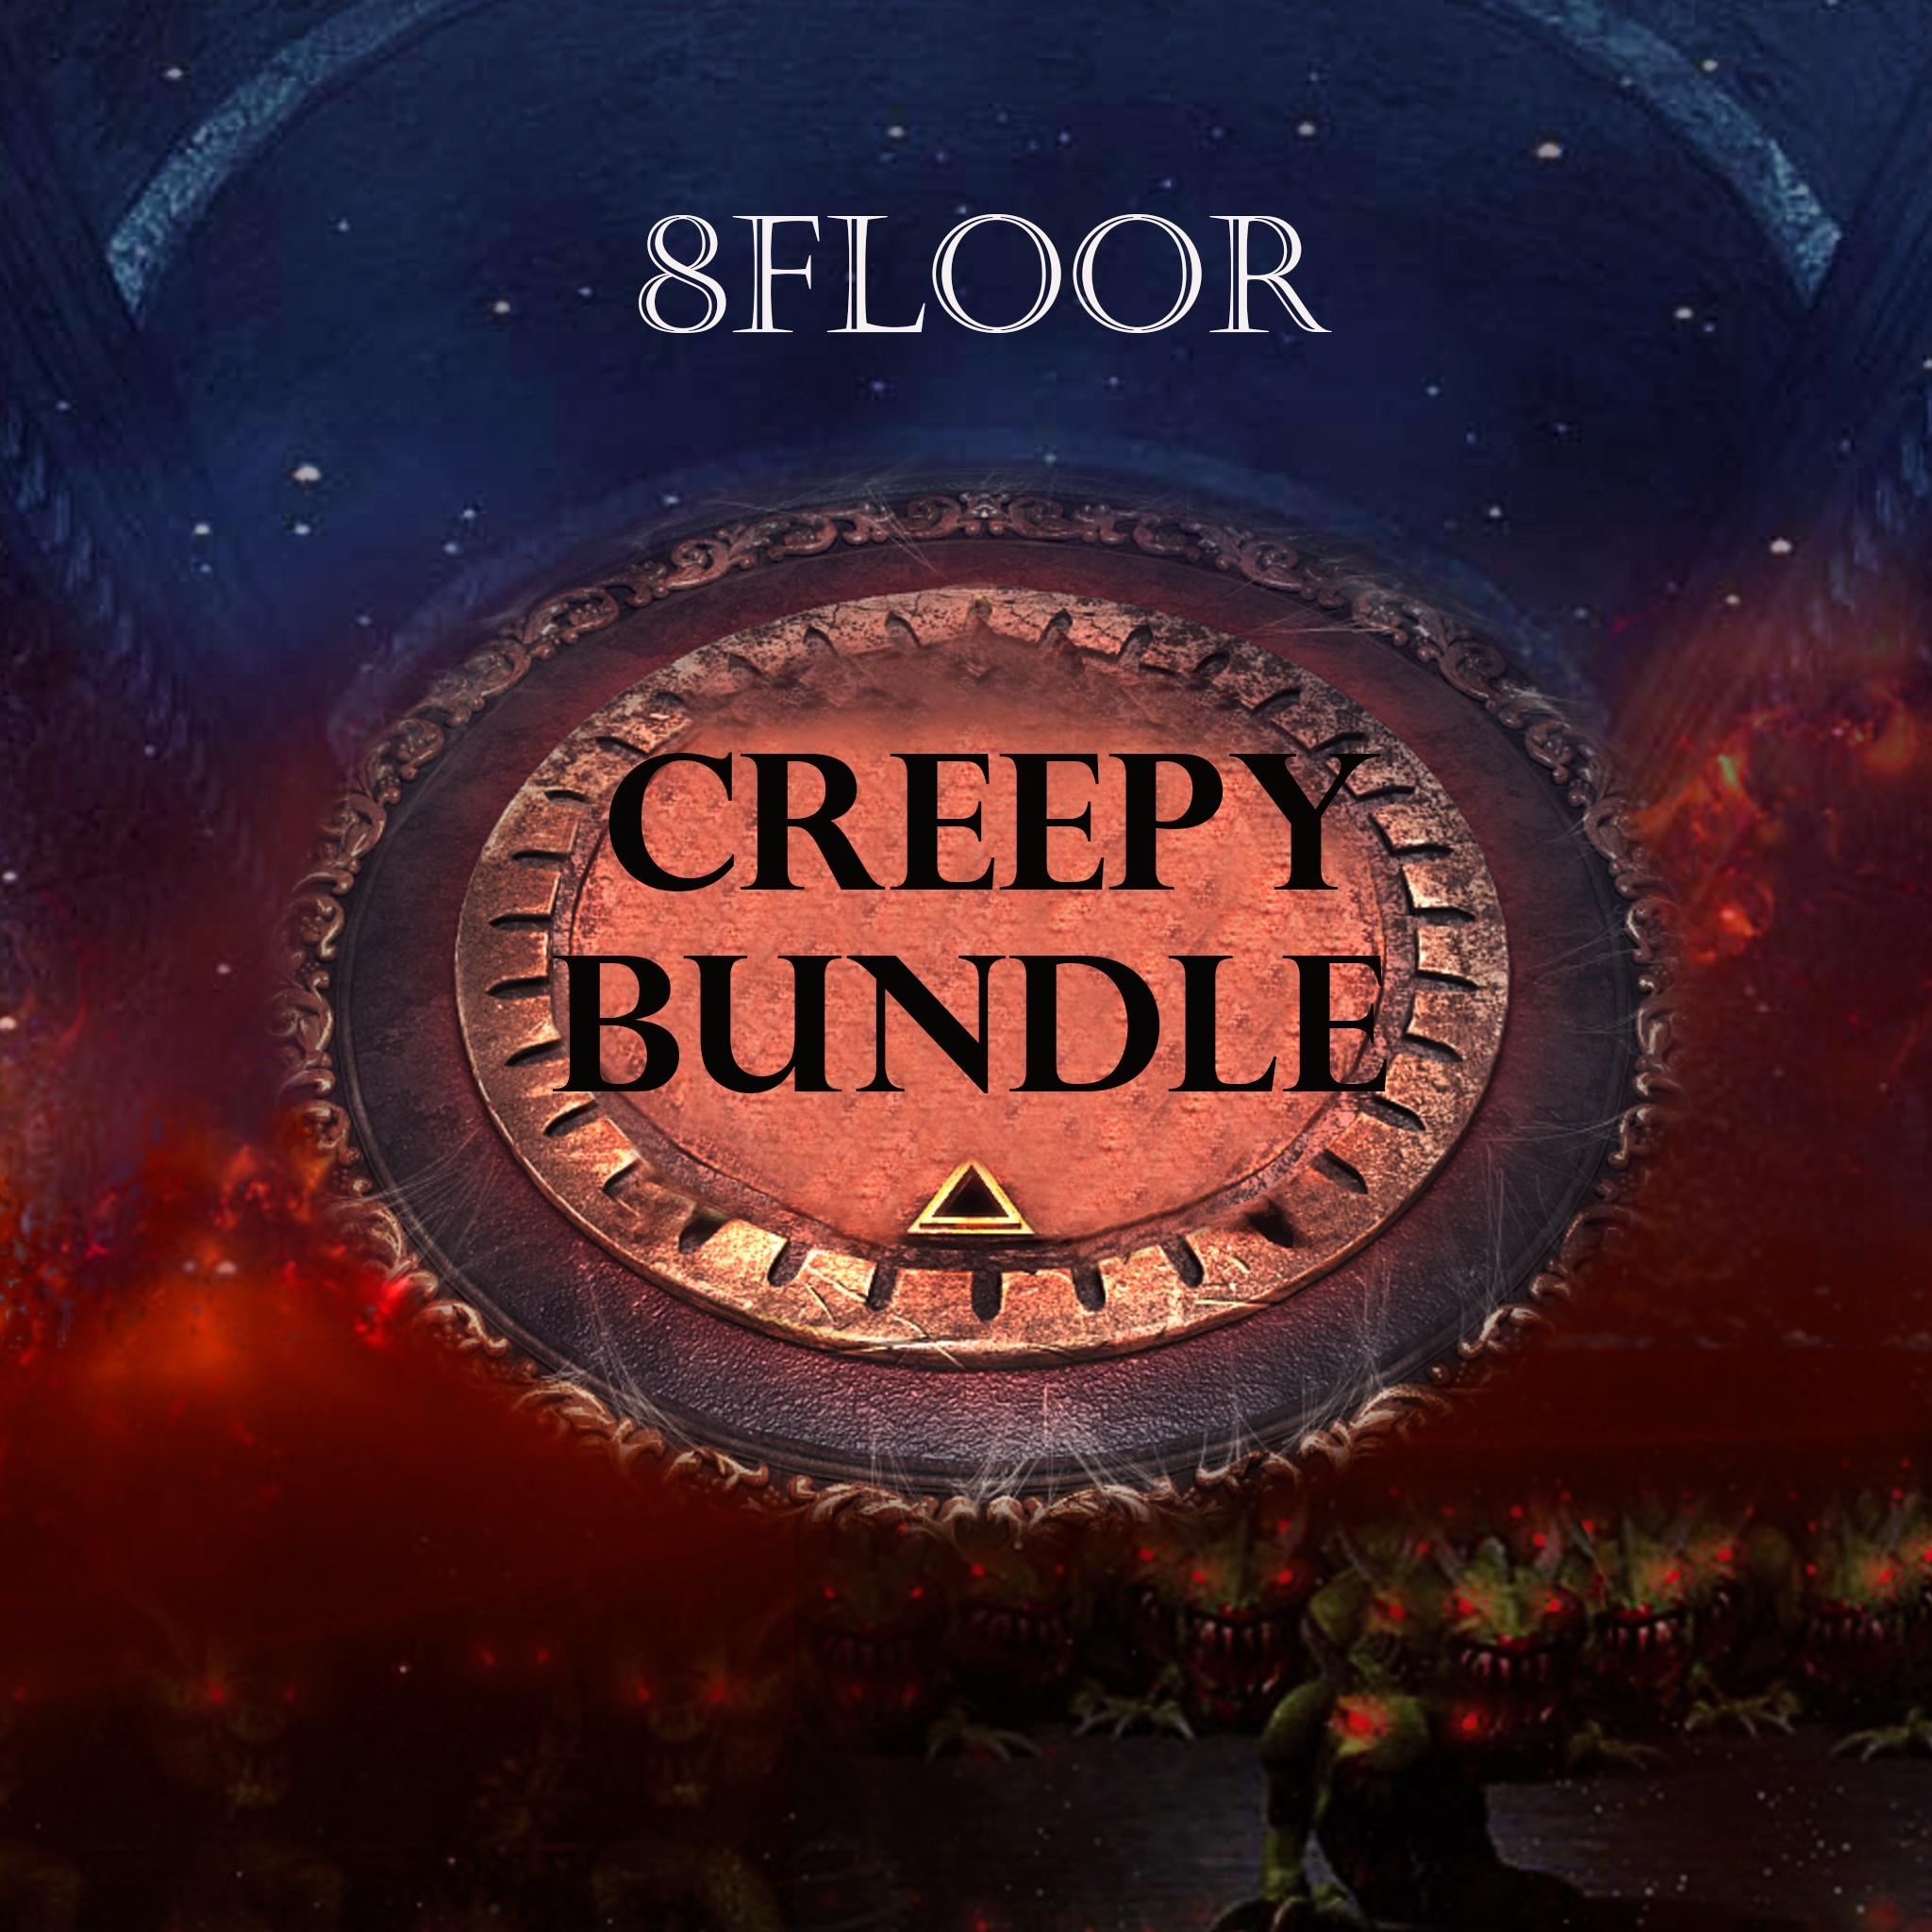 8Floor Creepy Bundle